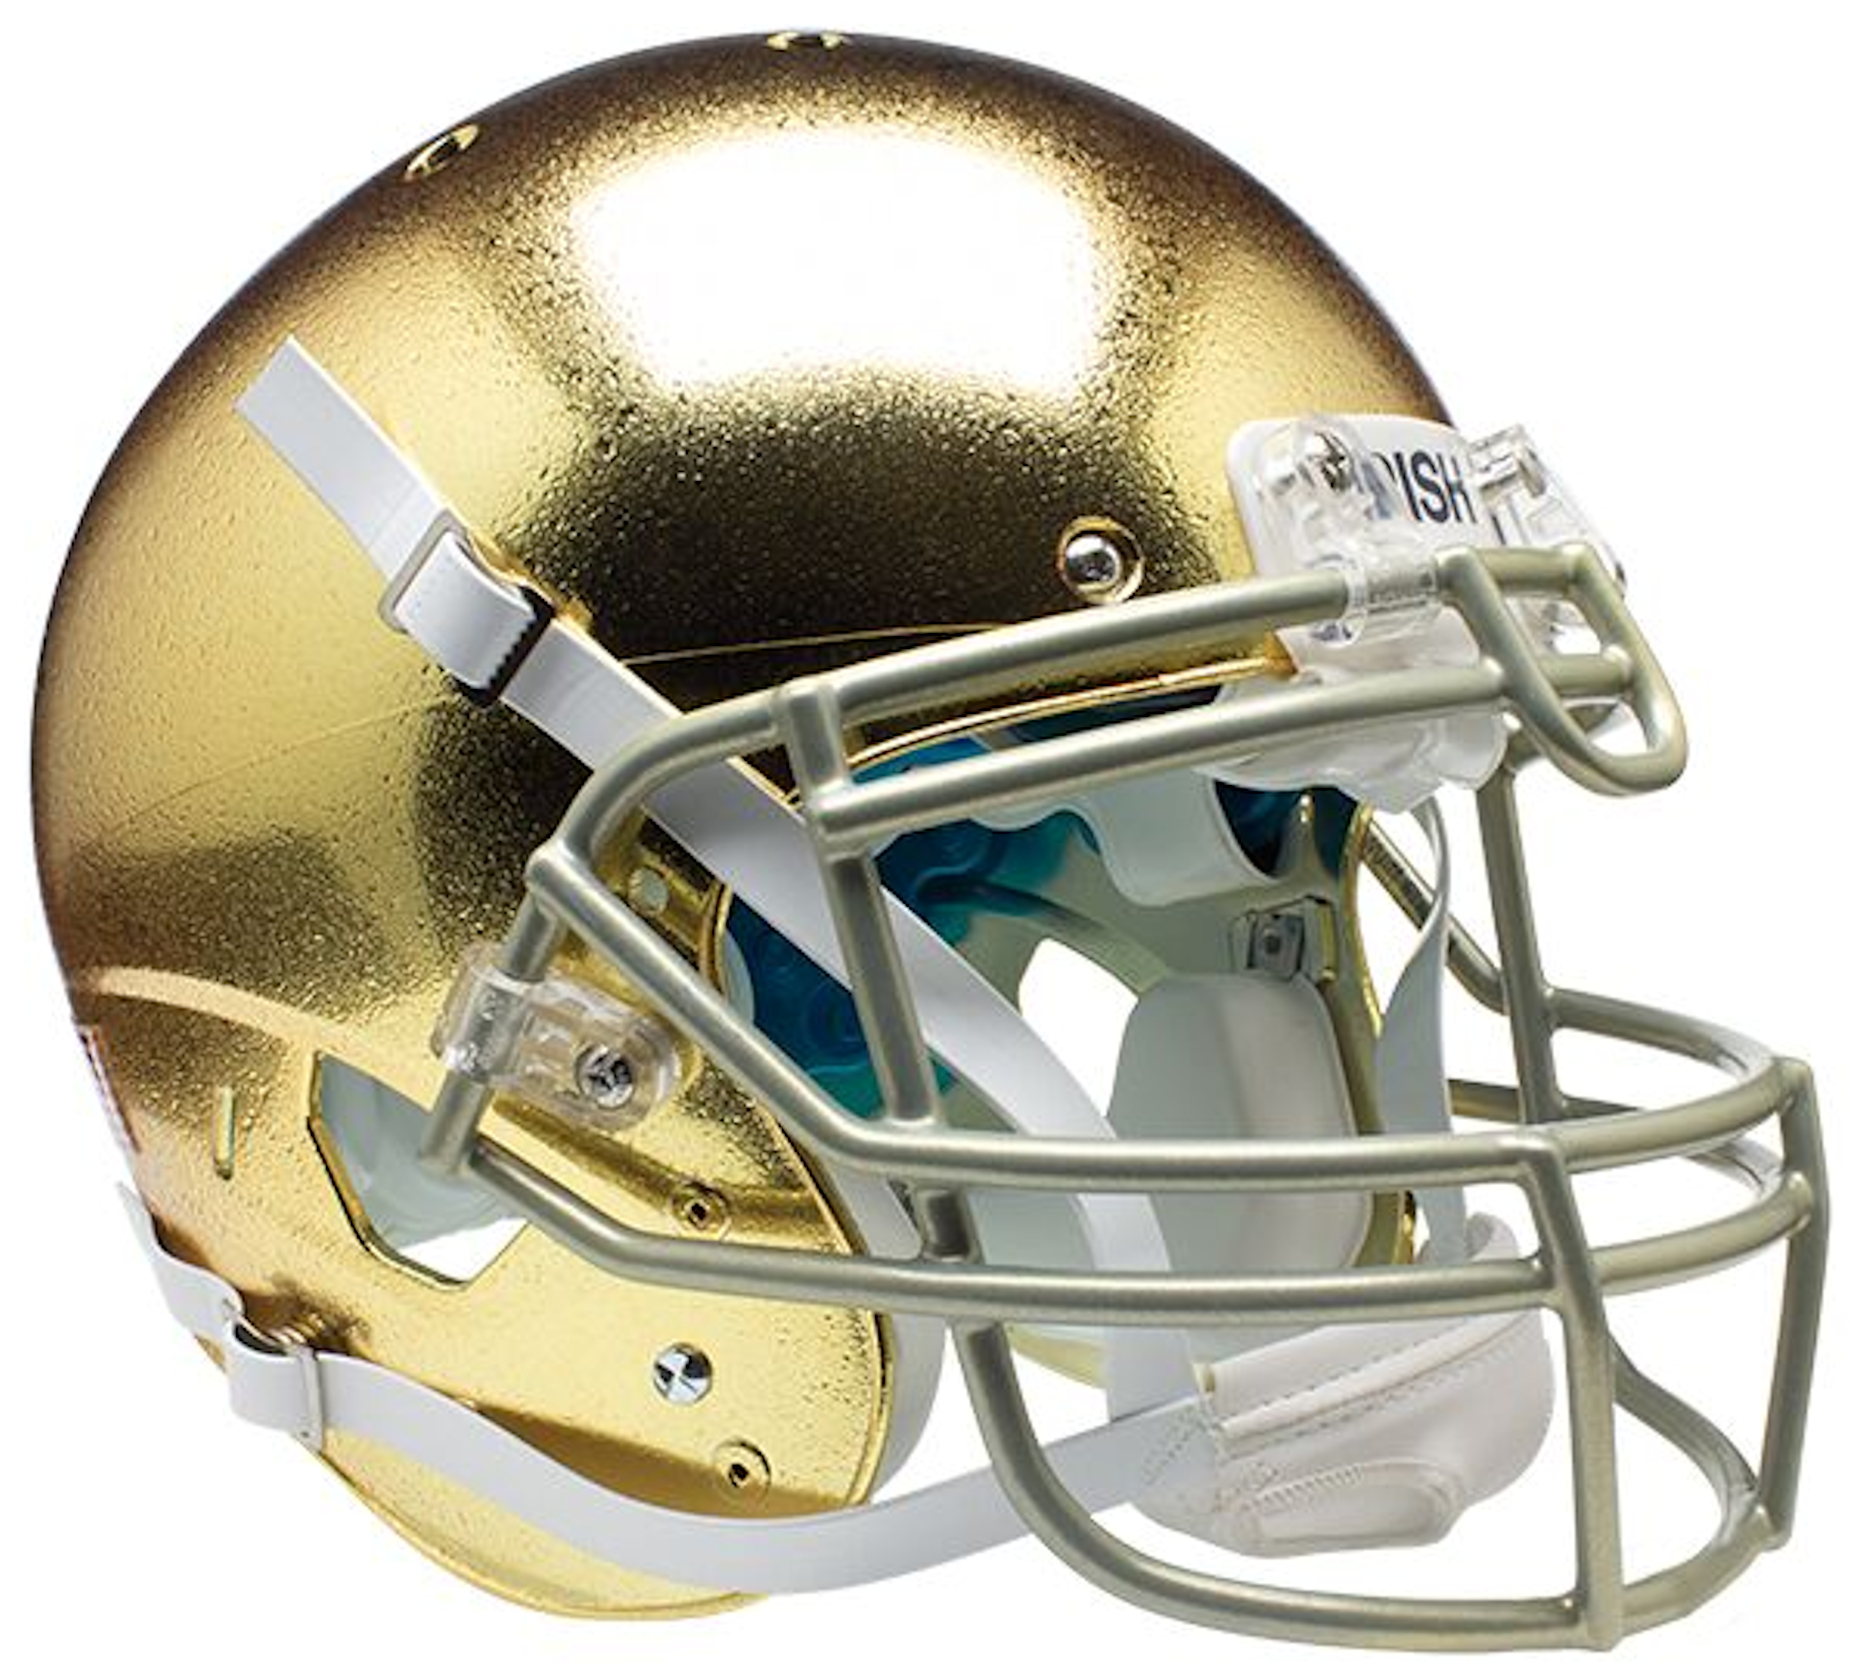 Notre Dame Fighting Irish Authentic College XP Football Helmet Schutt <B>Textured with Metallic Mask</B>